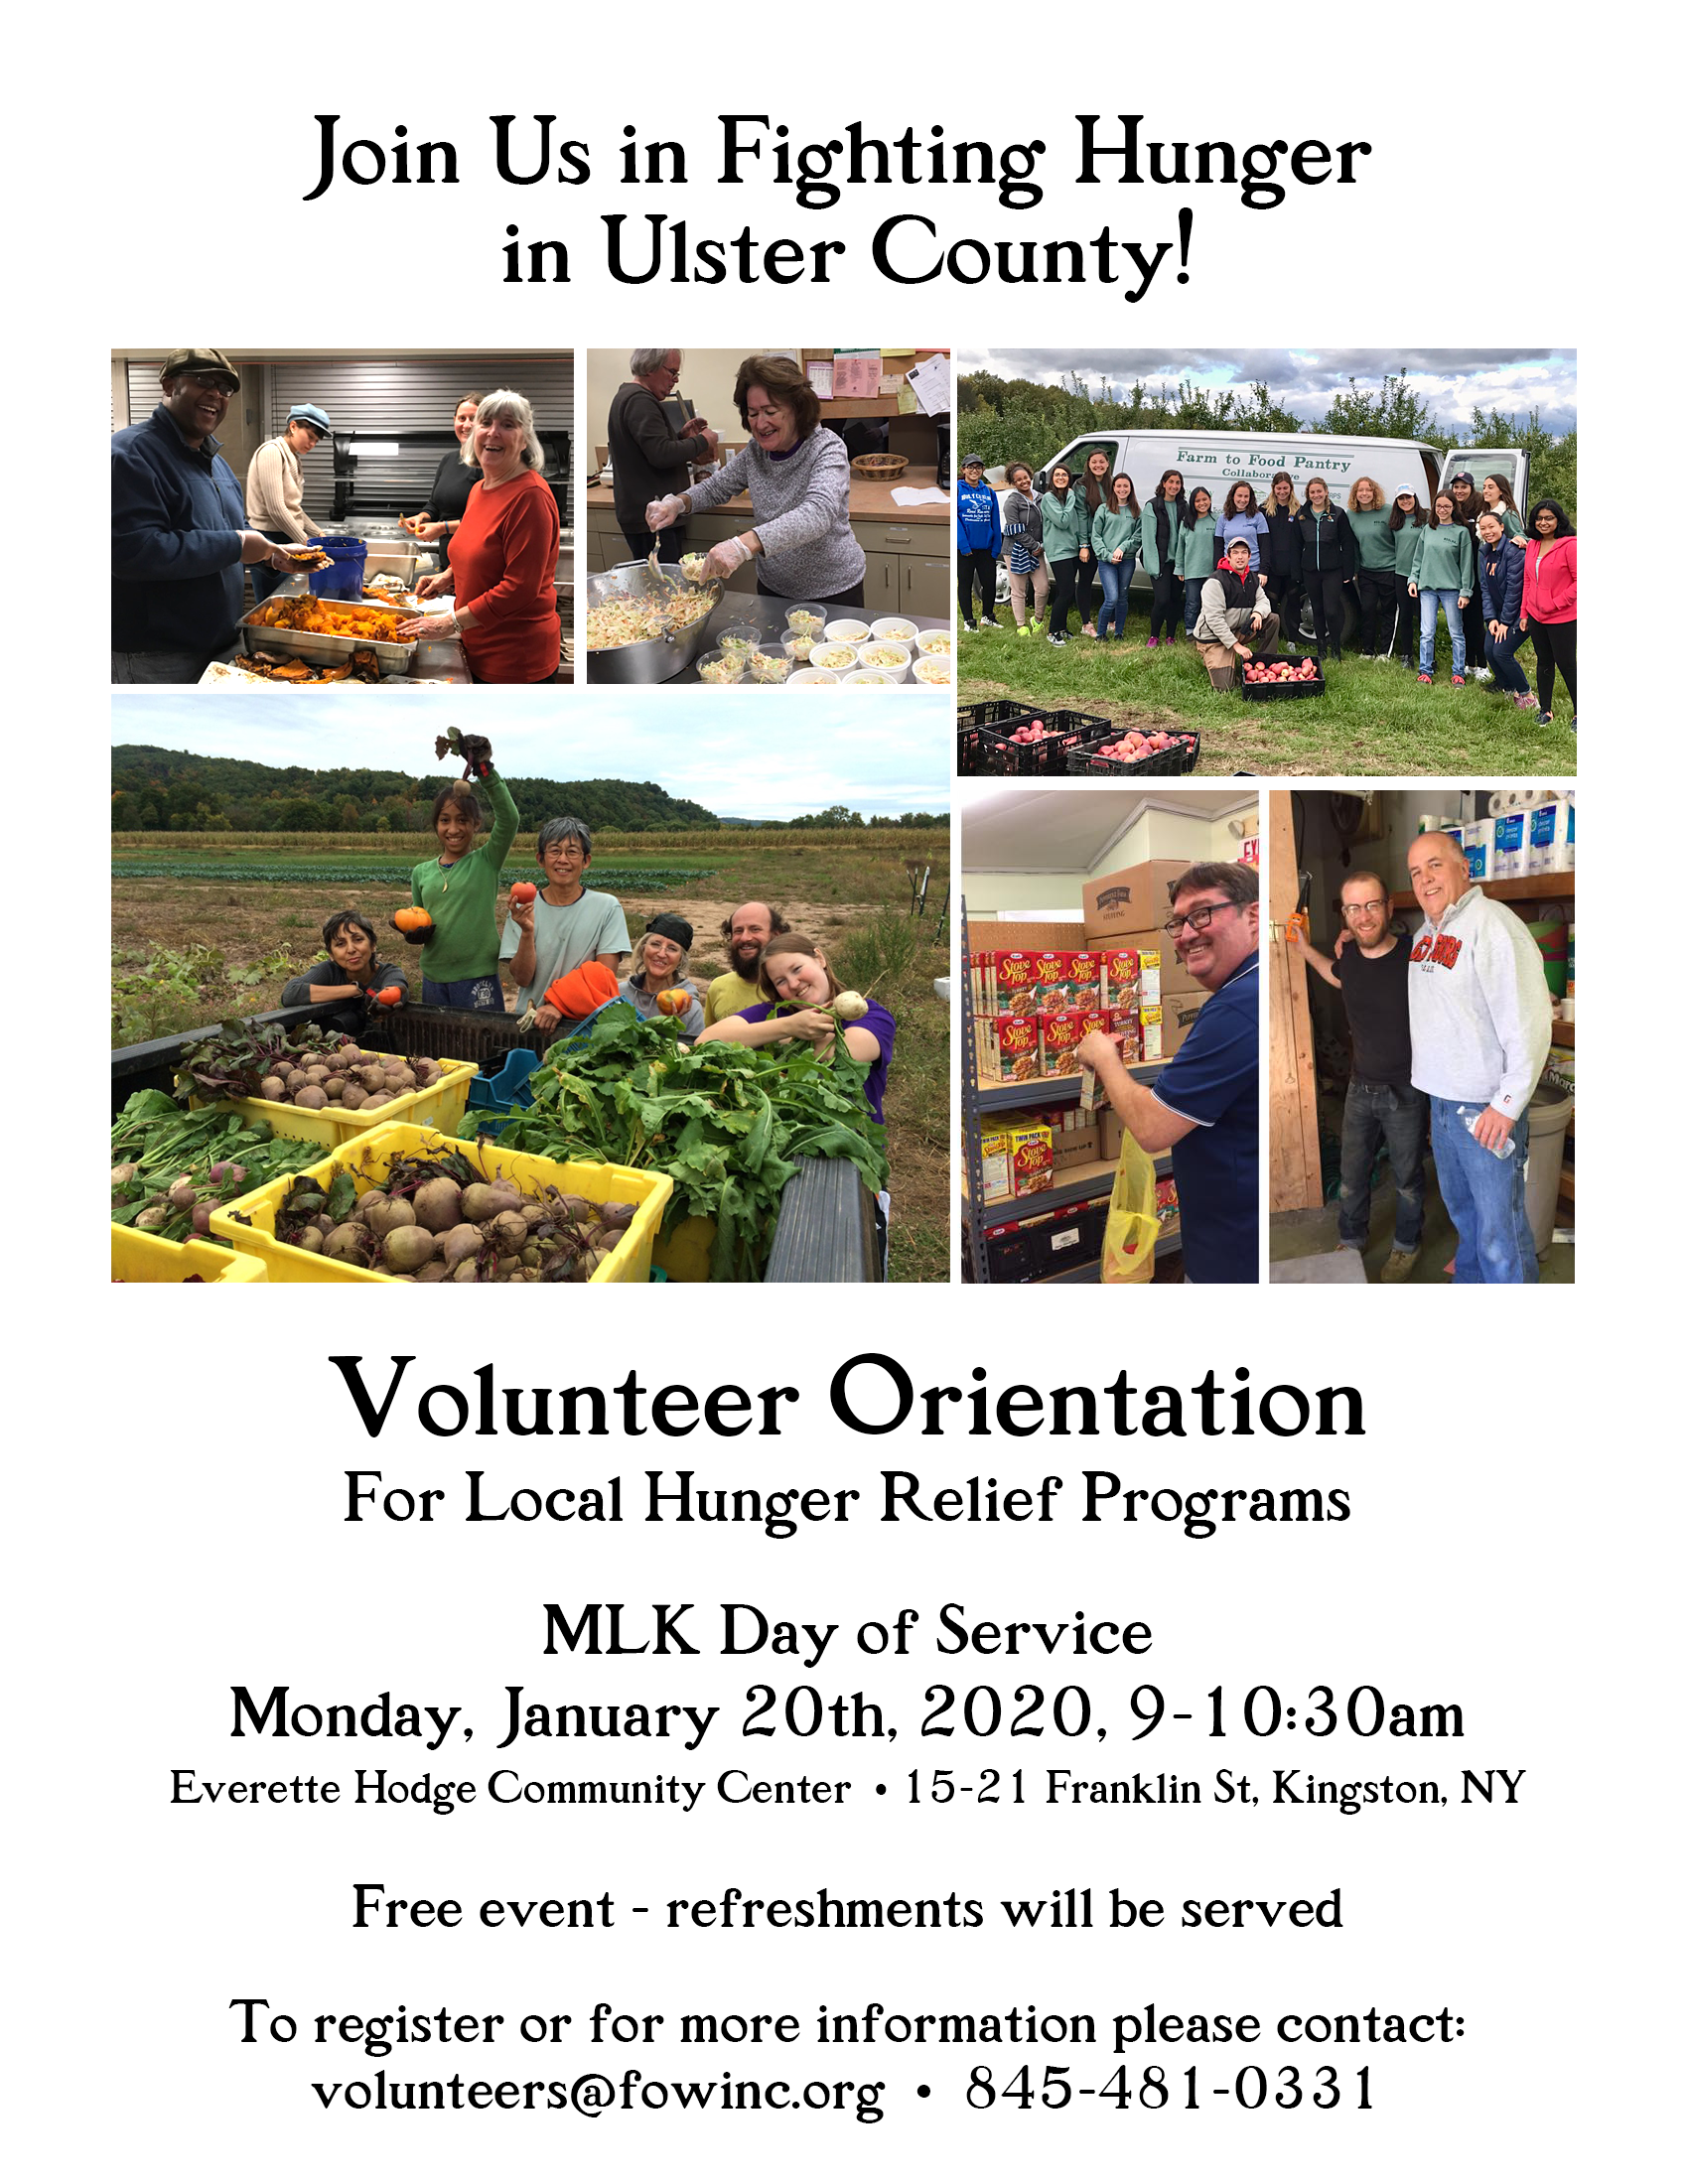 MLK Day of Service Volunteer Orientation for local hunger relief programs